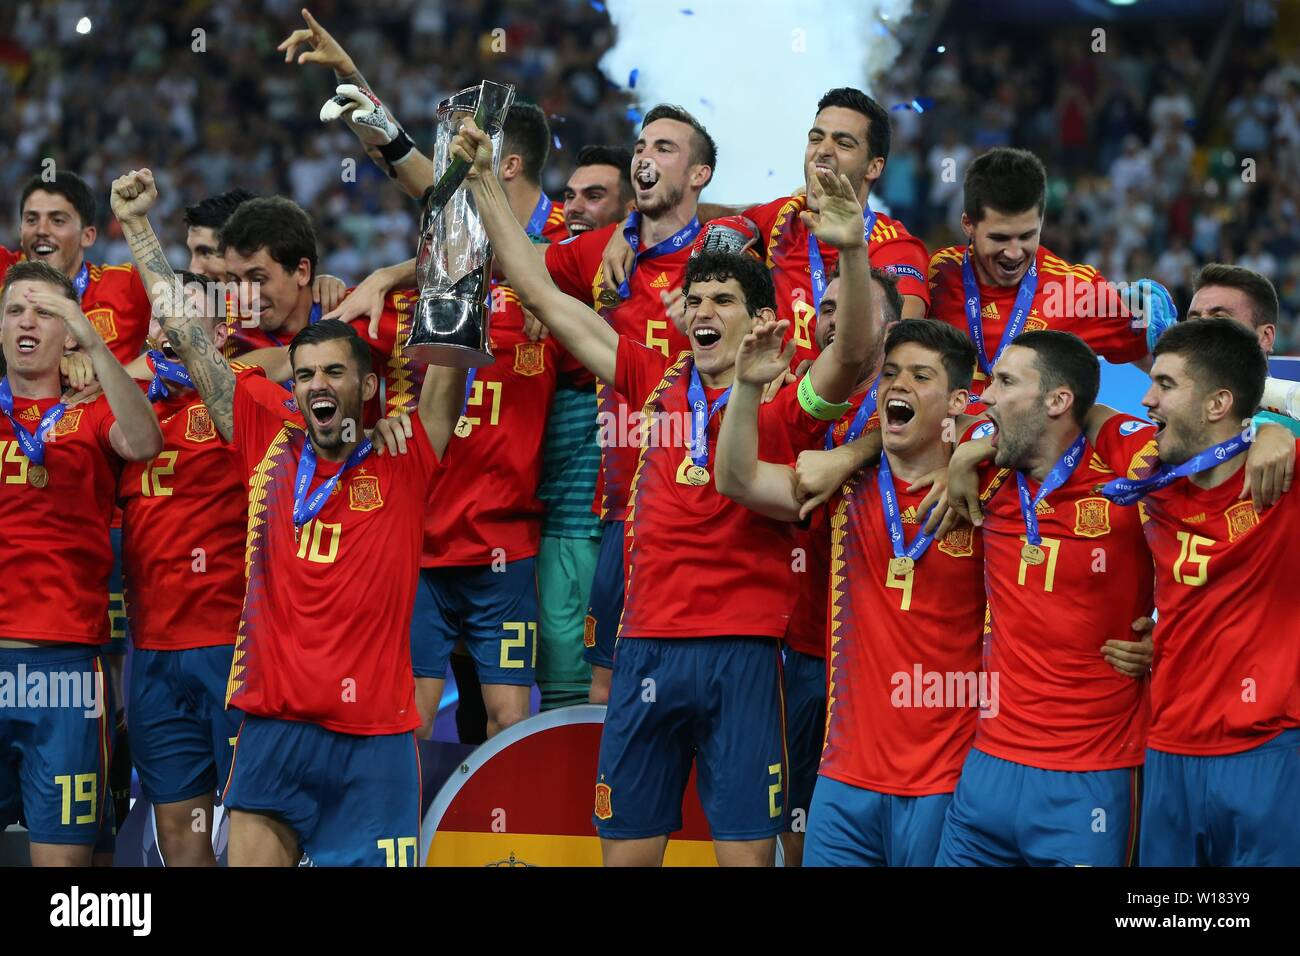 Udine, Italien. 30th June, 2019. firo: 30.06.2019, football, international, UEFA U21 European Championship 2019, final, Germany - Spain, award ceremony, jubilation, Dani Ceballos with Cup Nr.10 and Vallejo, Nr2 Spain, Spain, ESP, half figure, jubilation, cup, European Champion 2019 | usage worldwide Credit: dpa/Alamy Live News Stock Photo